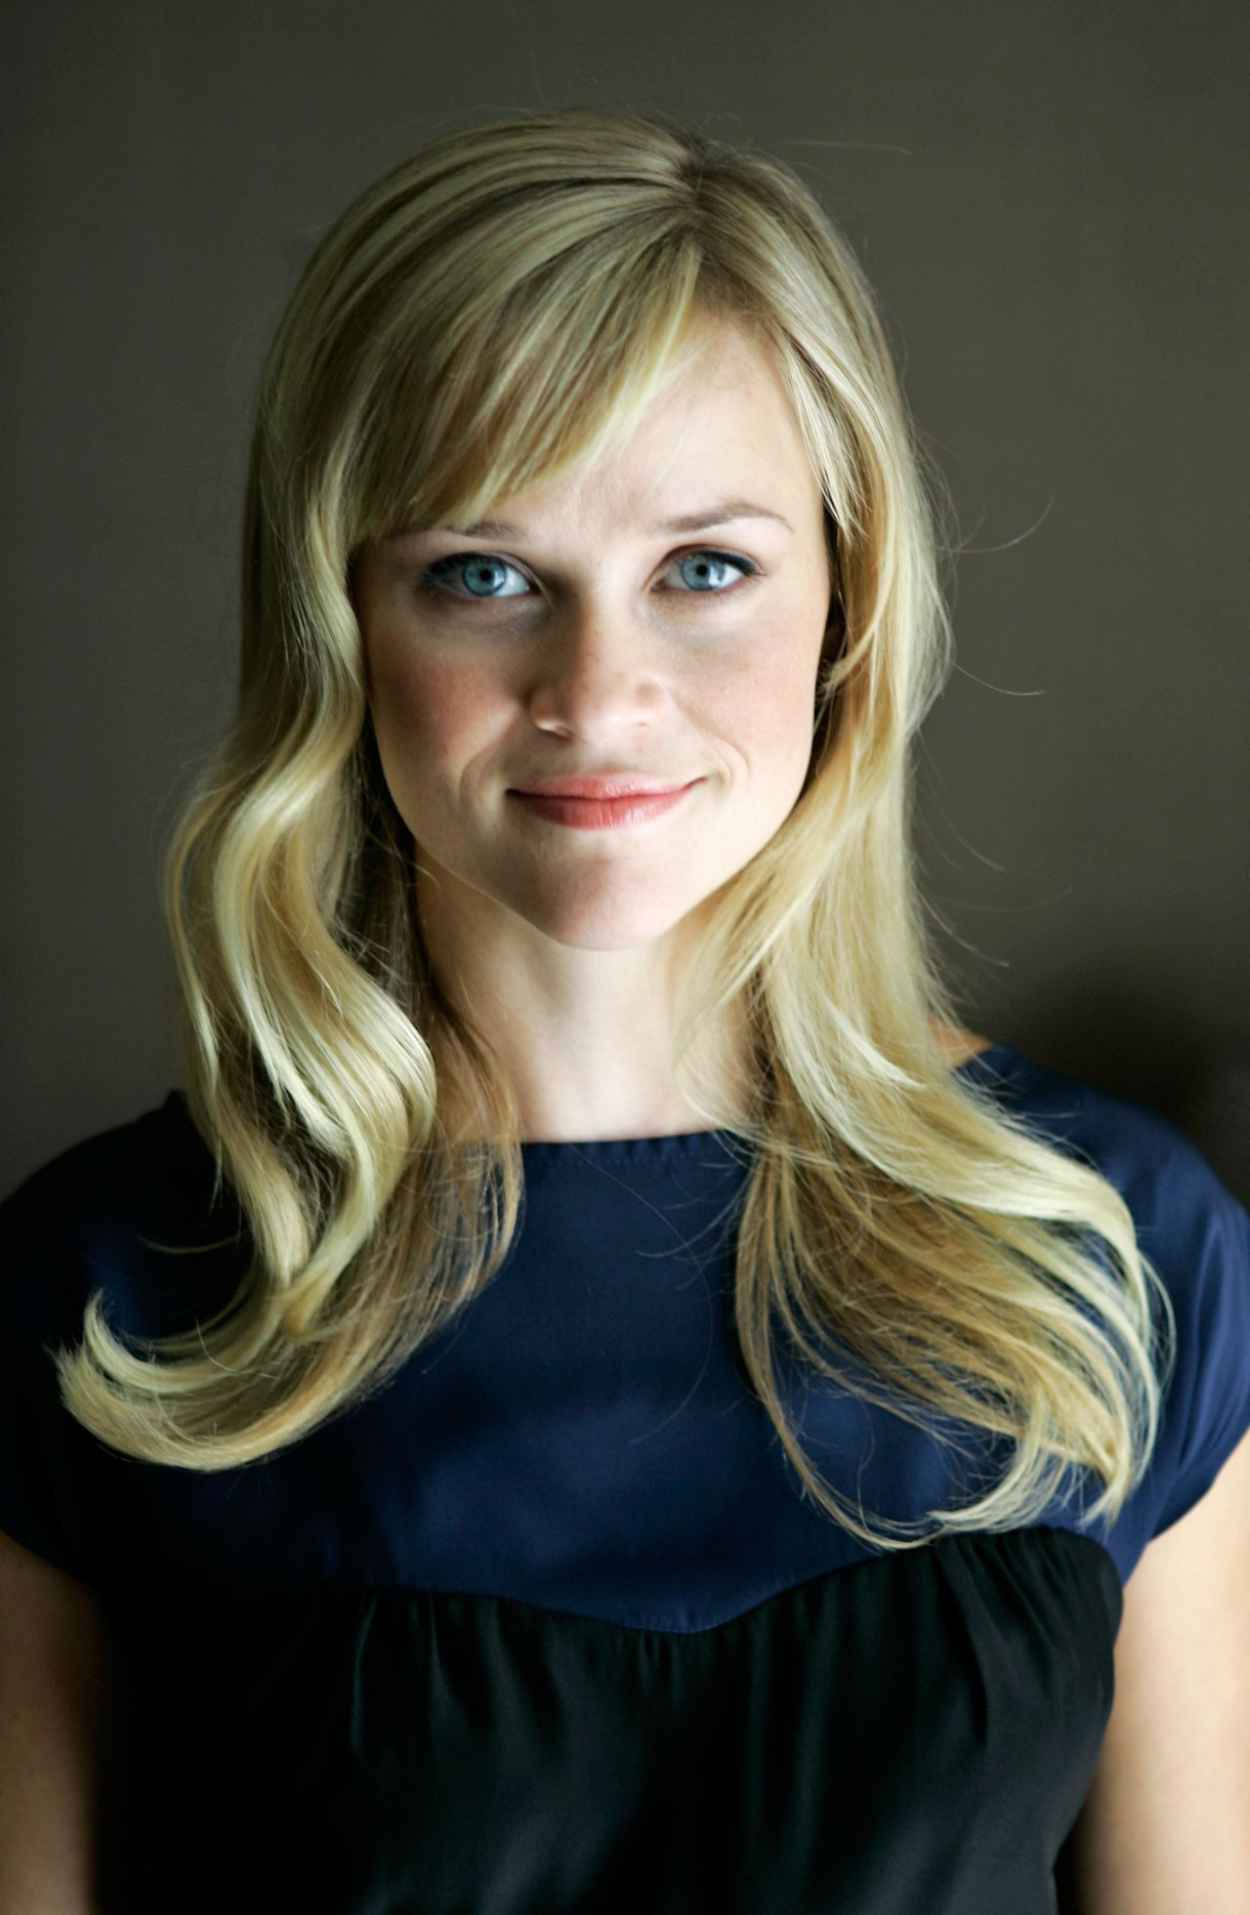 Reese Witherspoon Photos - Rendition TIFF Portraits - September 2007-1